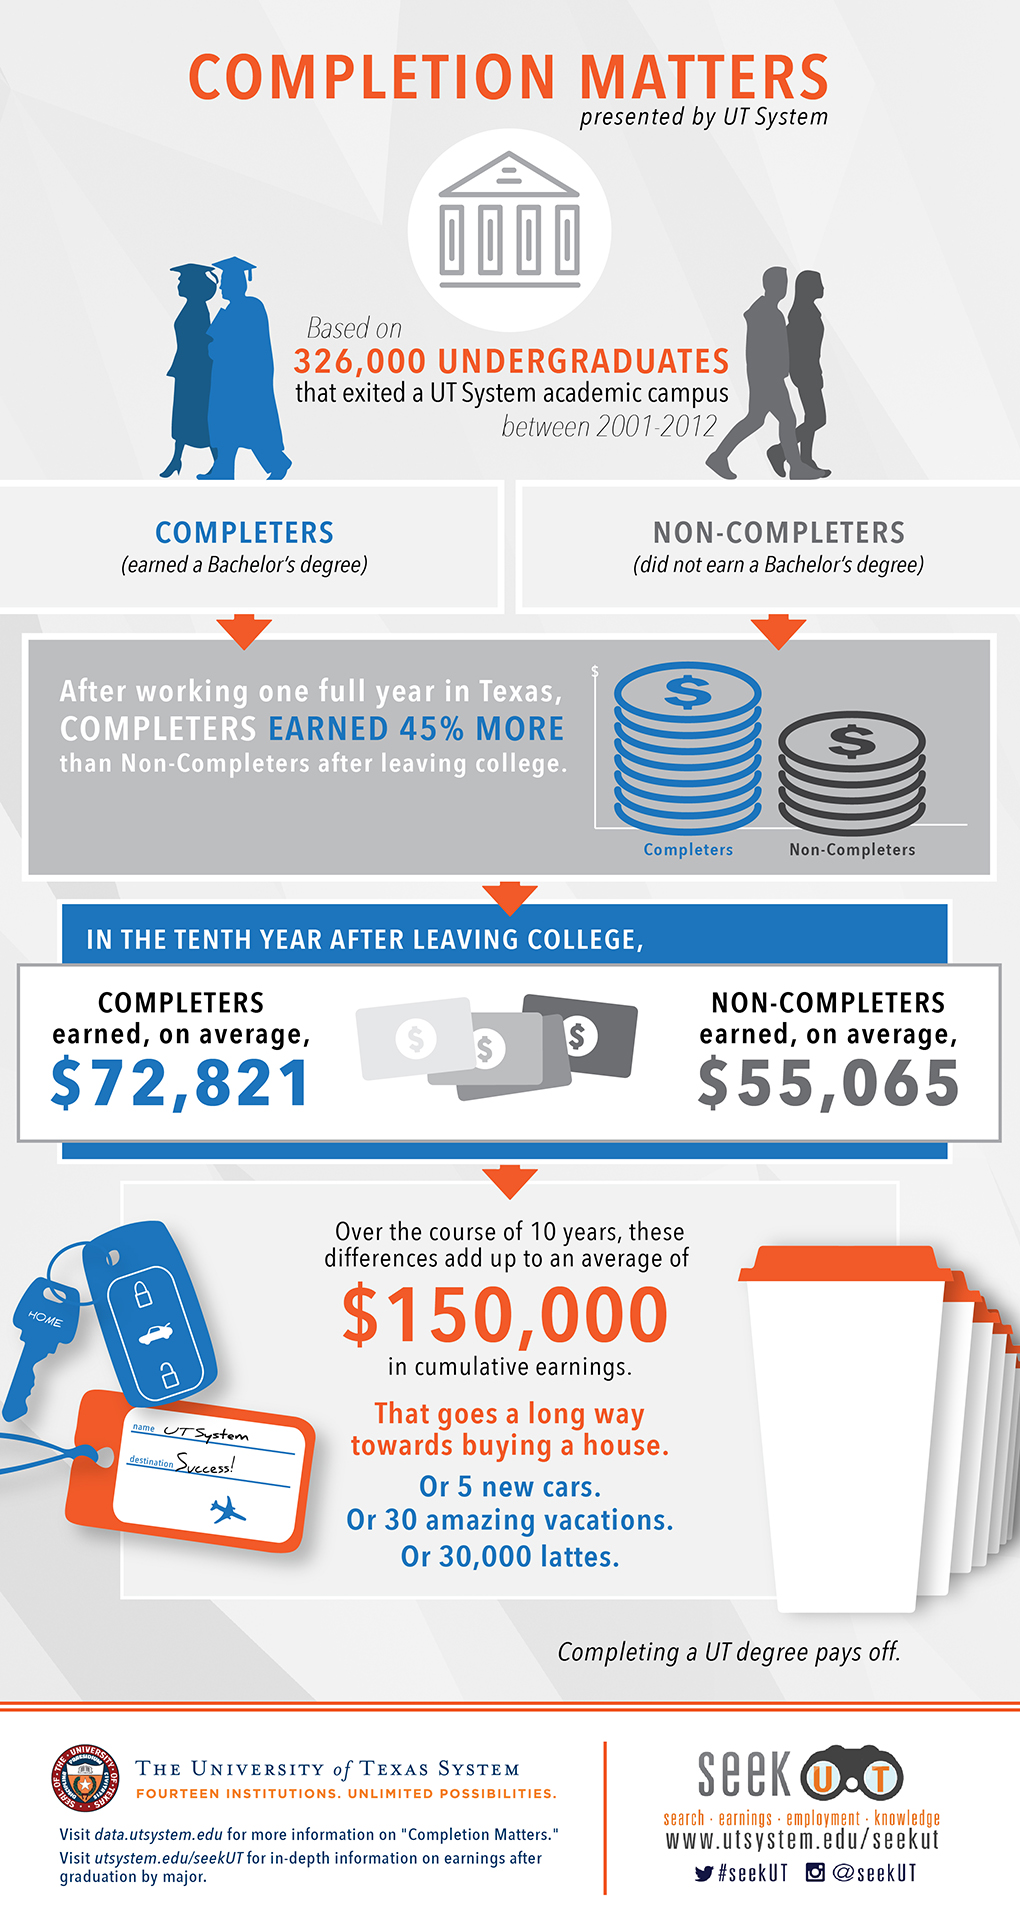 CompletionMatters Infographic